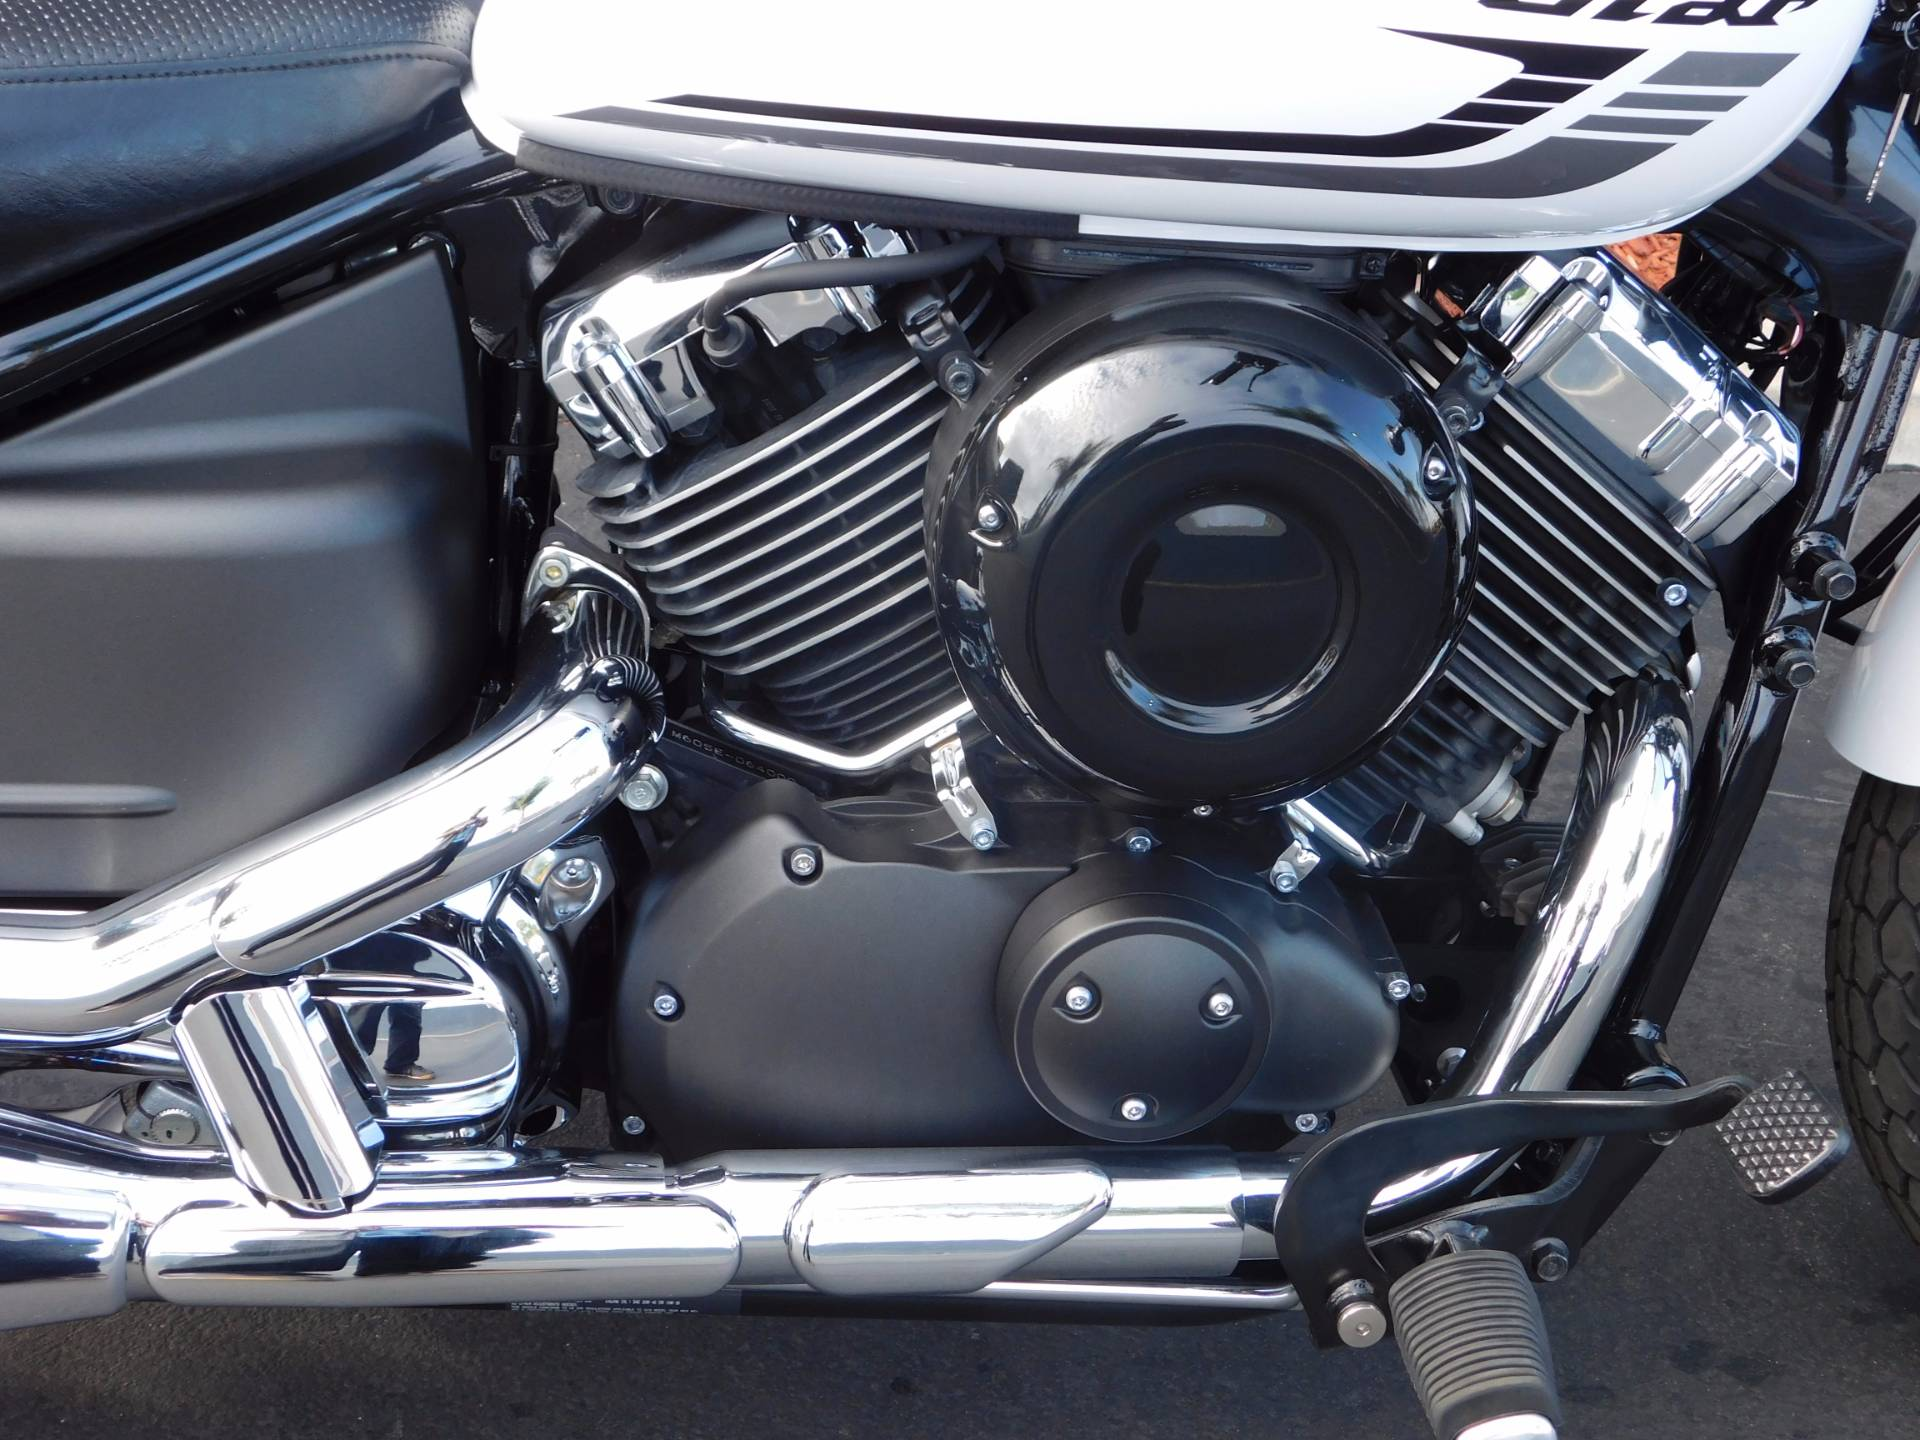 2016 Yamaha V Star 650 Custom in Chula Vista, California - Photo 5